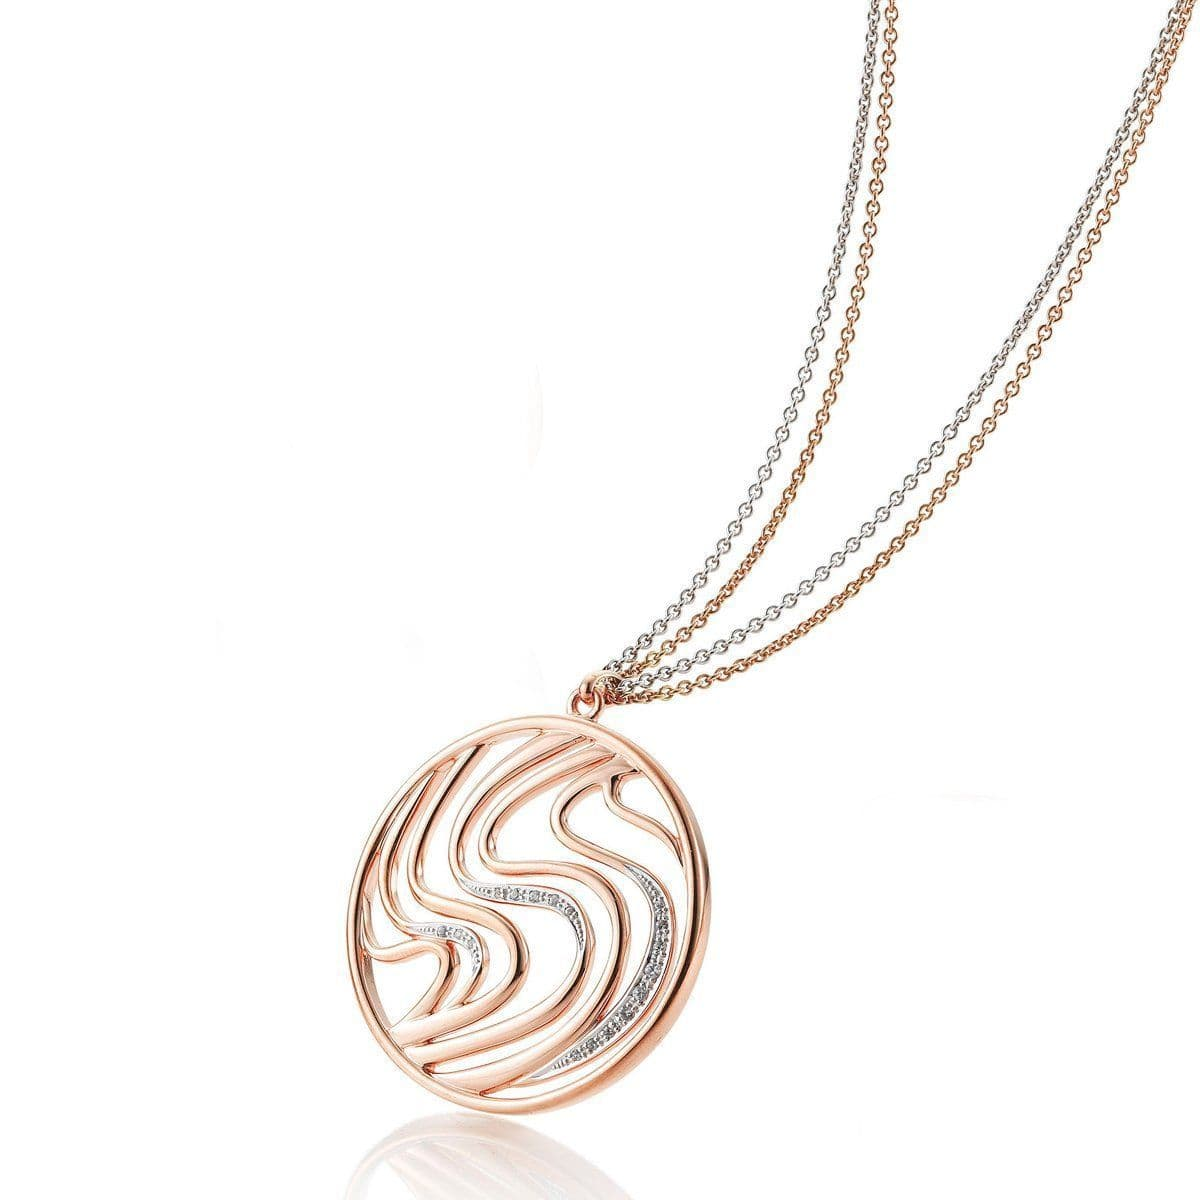 Rose Gold Plated Sterling Silver Sapphire Pendant - 32/03262-Breuning-Renee Taylor Gallery